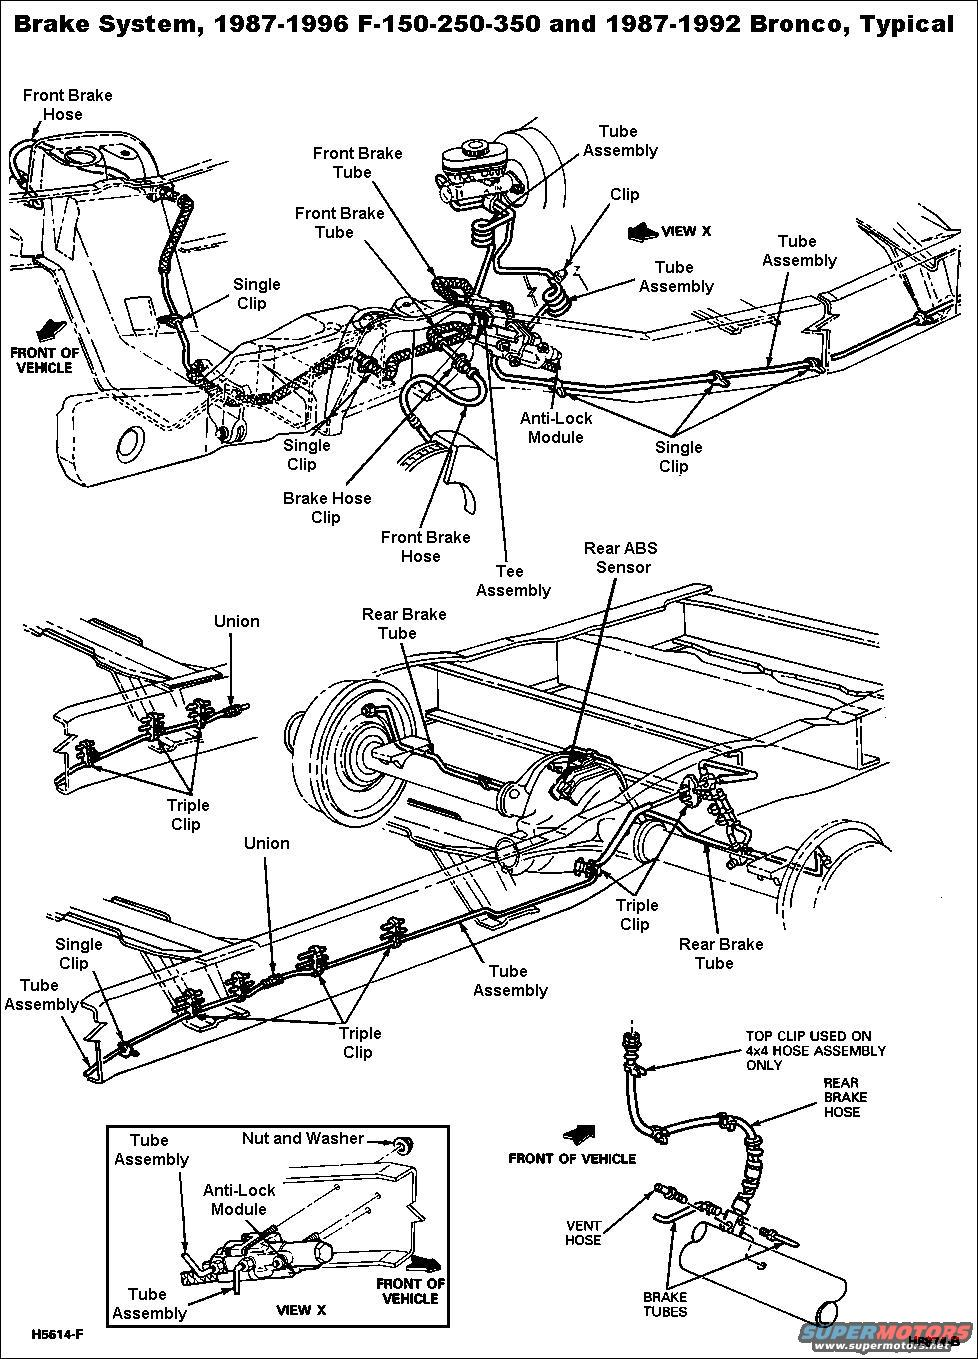 1146228 Updated Replaced Some Stuff Brakes Still Suck on 1997 isuzu npr wiring diagram